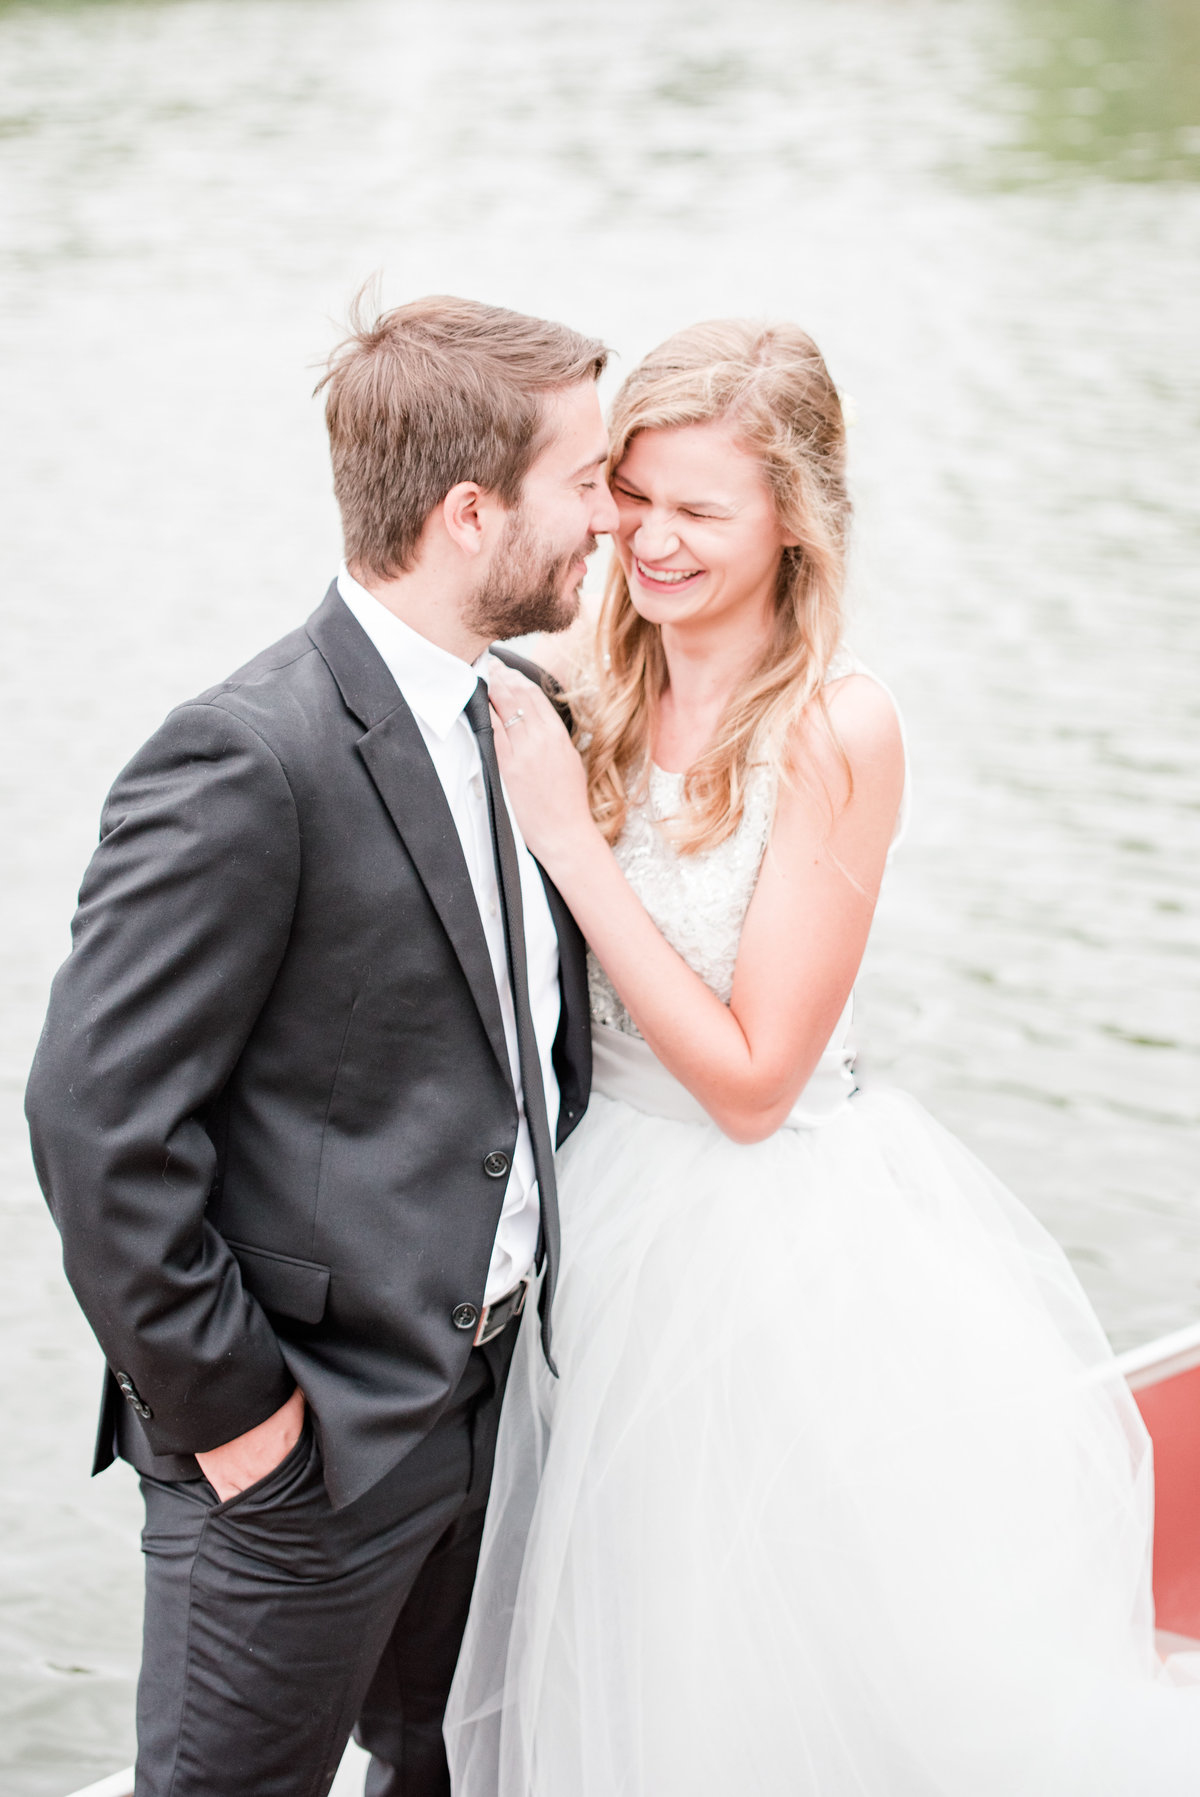 Cait Potter Creative LLC Final Version Canoe Adventure Wedding -1